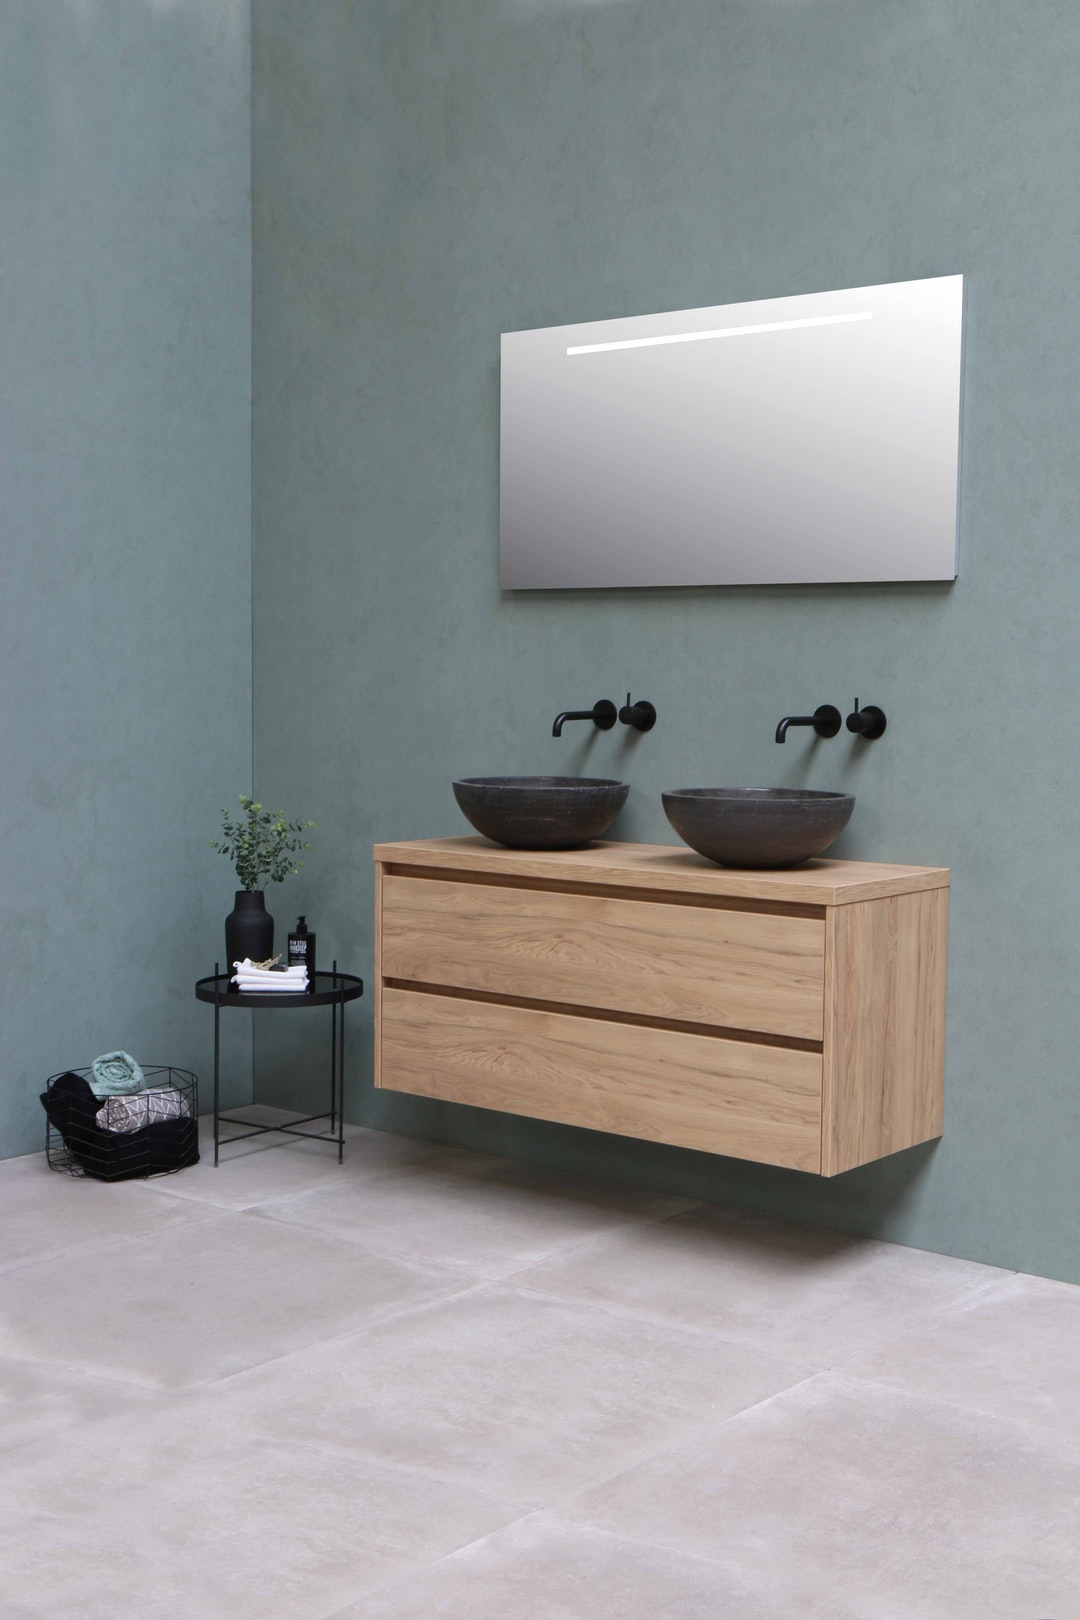 THINGS TO KEEP IN MIND WHEN CONSIDERING BATHROOM RENOVATION